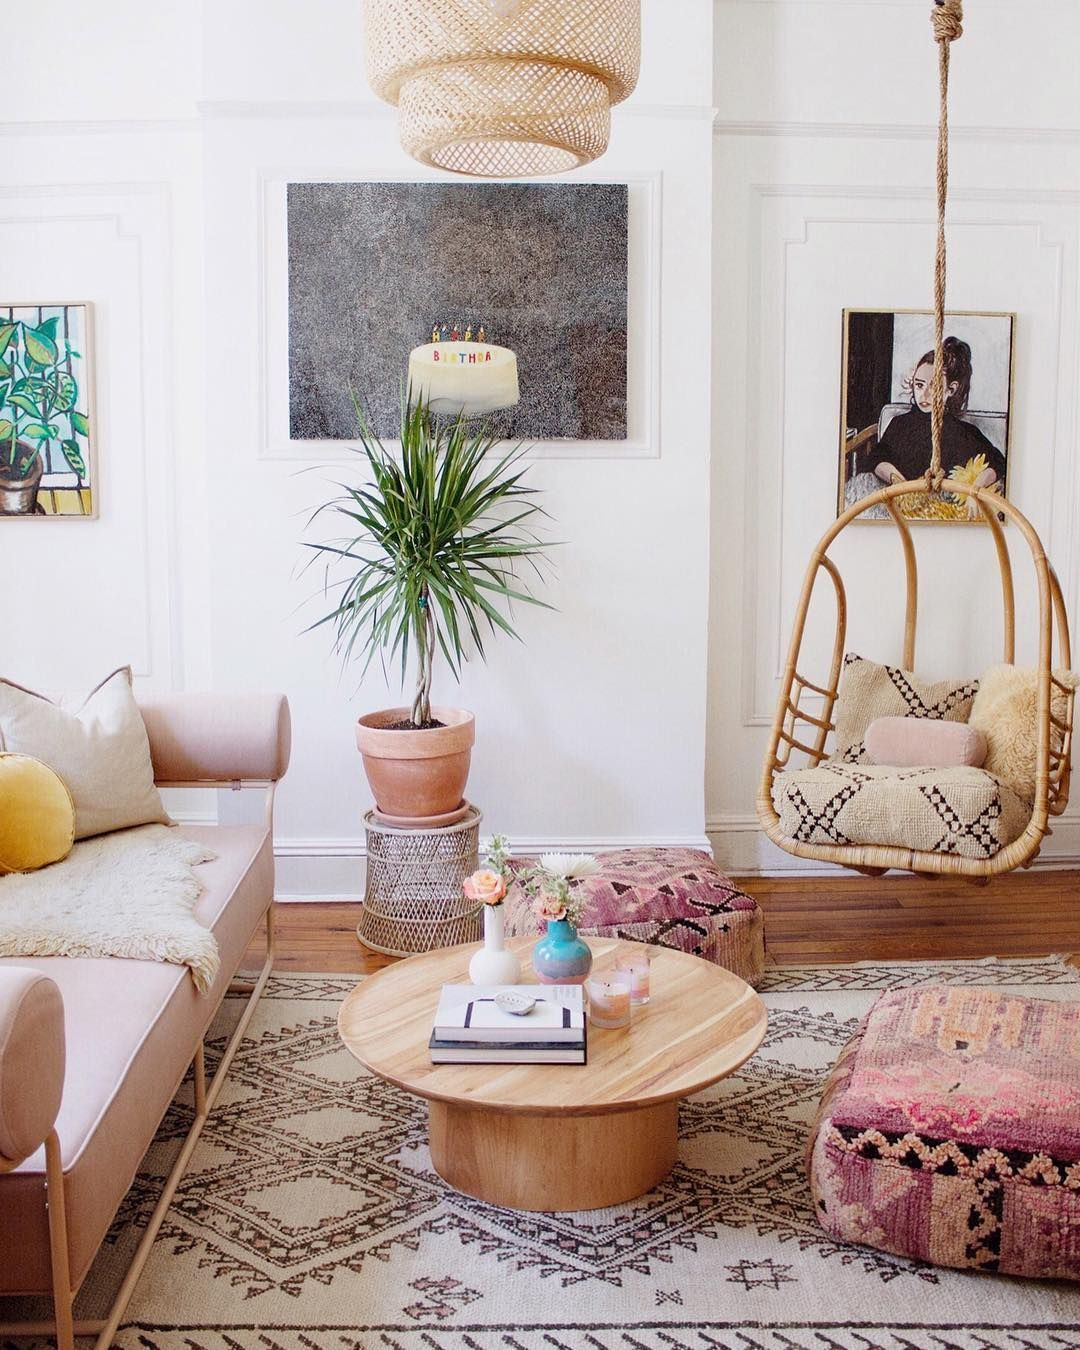 Obsessed With This Boho Chic Living Room Decor Chic Living Room Decor Boho Chic Living Room Chic Living Room